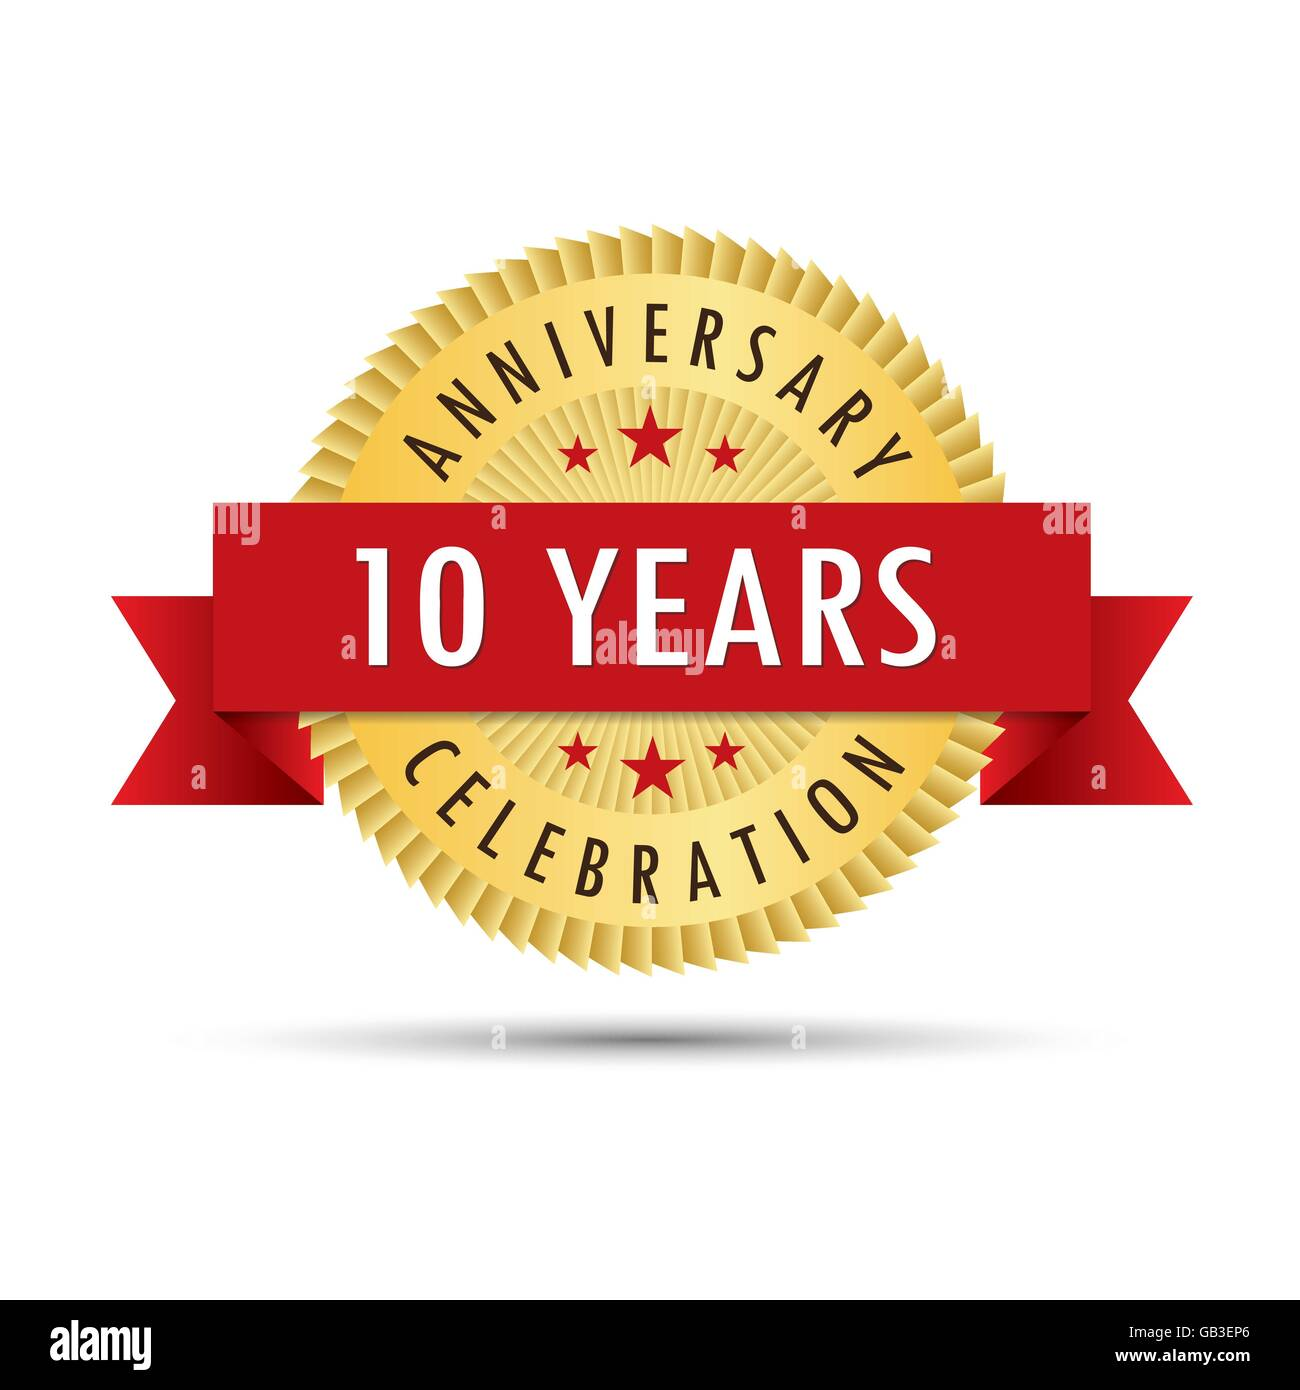 Ten years anniversary, tenth anniversary celebration gold badge icon logo vector graphic design - Stock Vector